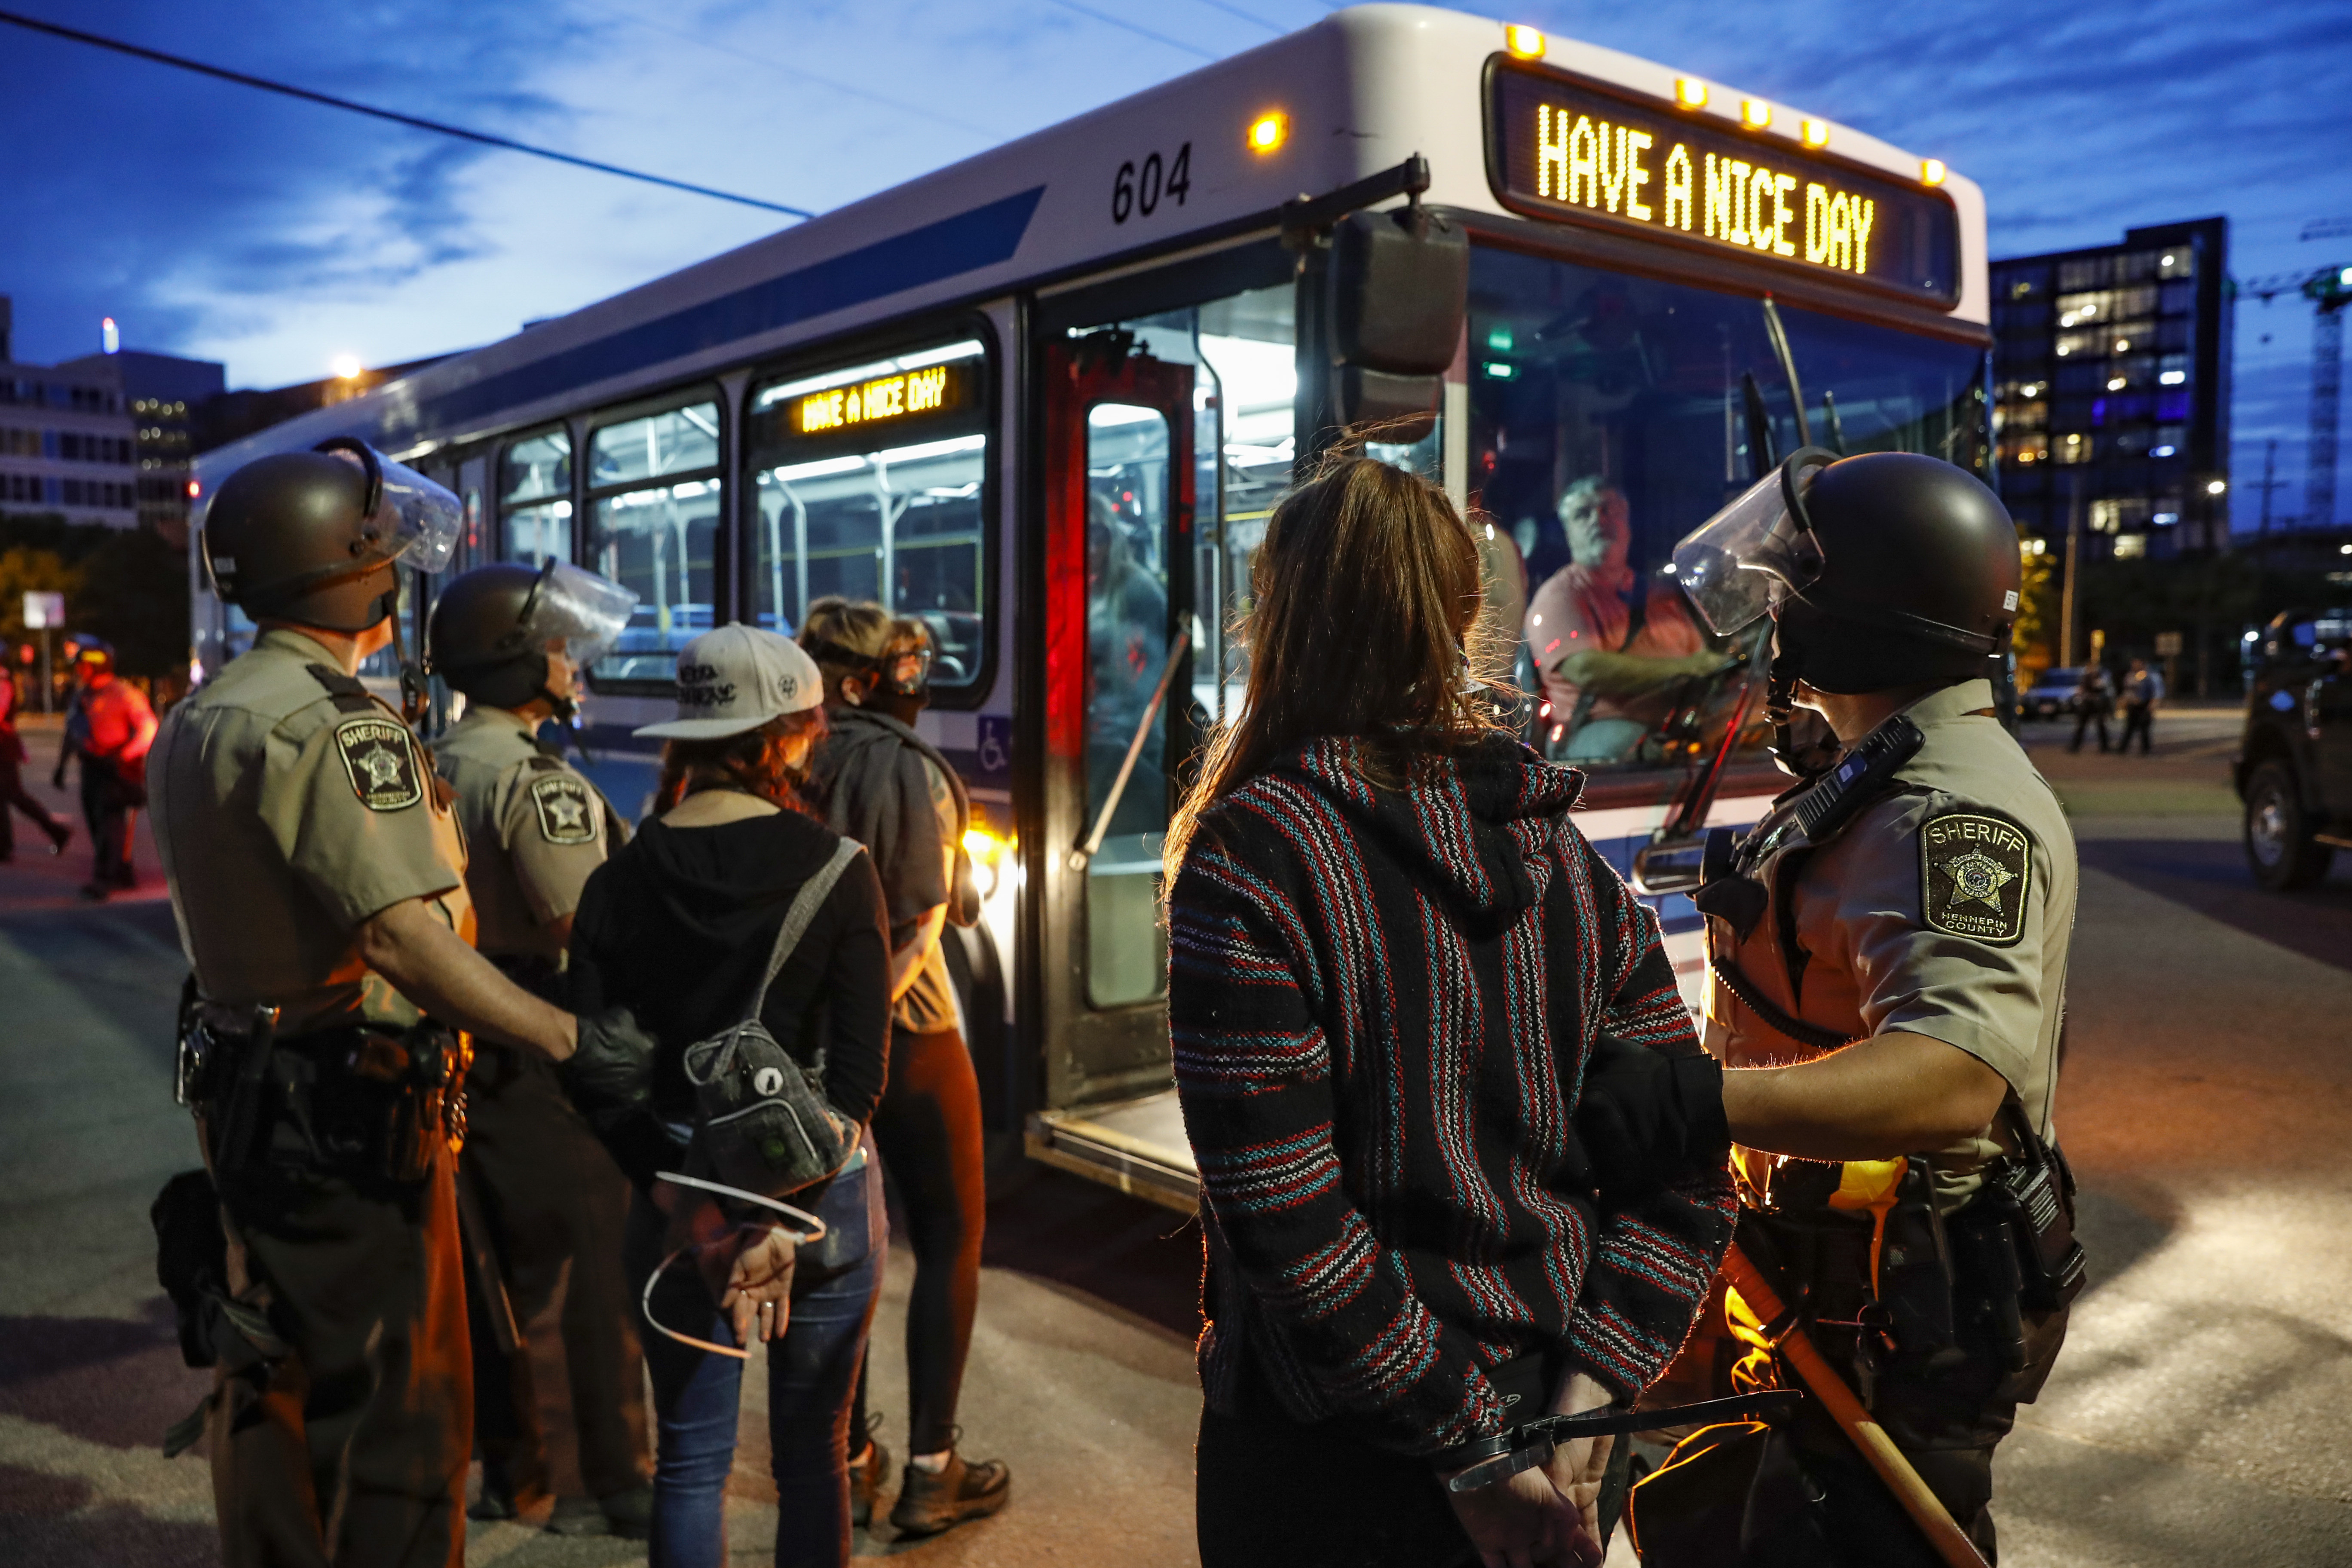 Arrested protesters are loaded onto a transport bus by police on South Washington Street, Sunday, May 31, 2020, in Minneapolis. Protests continued following the death of George Floyd, who died after being restrained by Minneapolis police officers on Memorial Day. (AP Photo/John Minchillo)